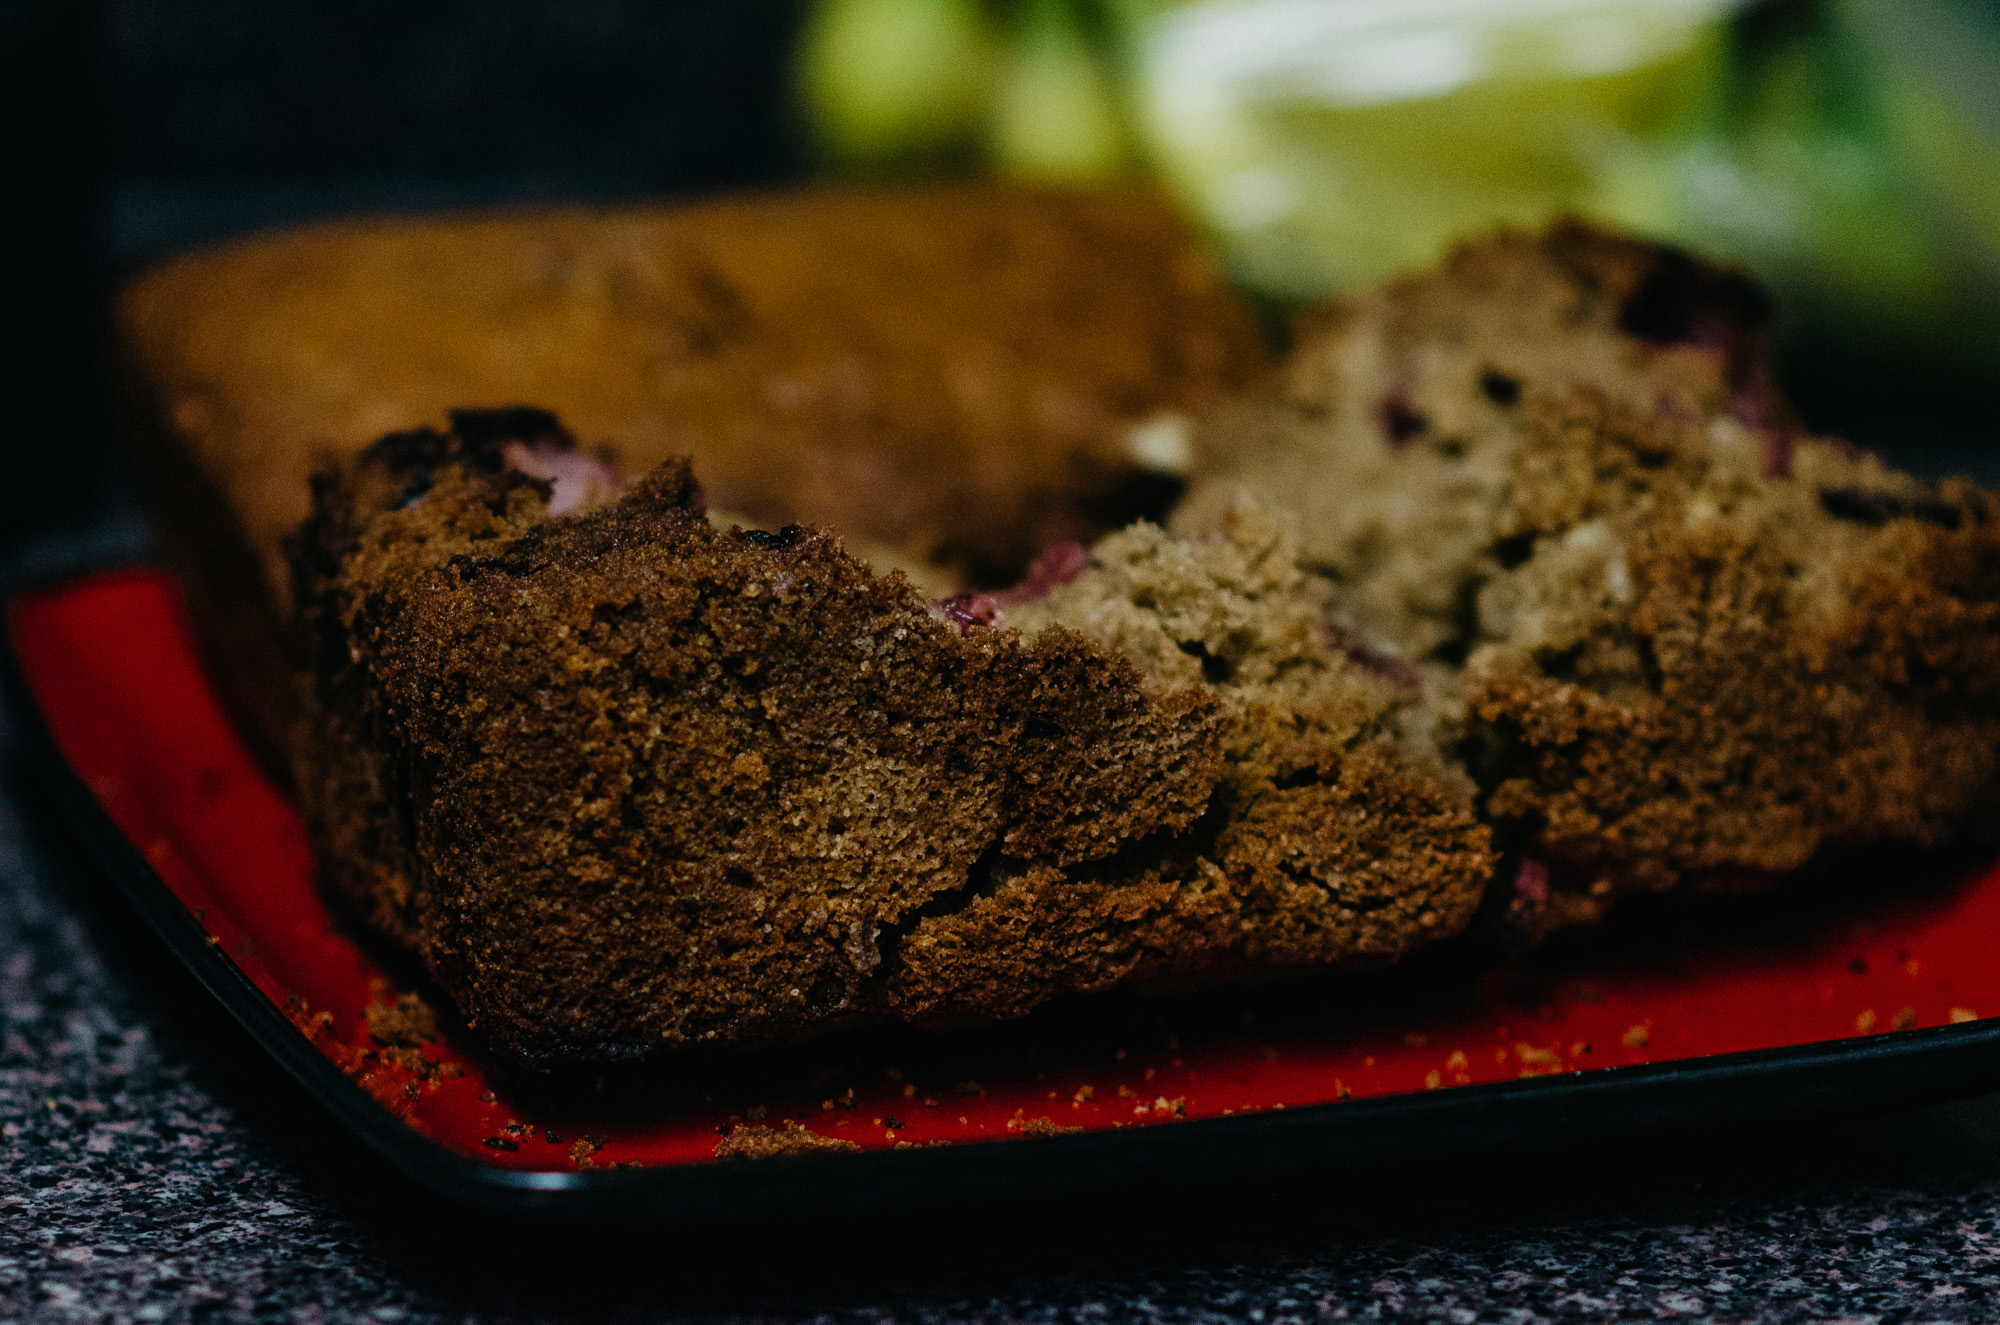 samantha whitford photography strawberry nut bread (2).jpg